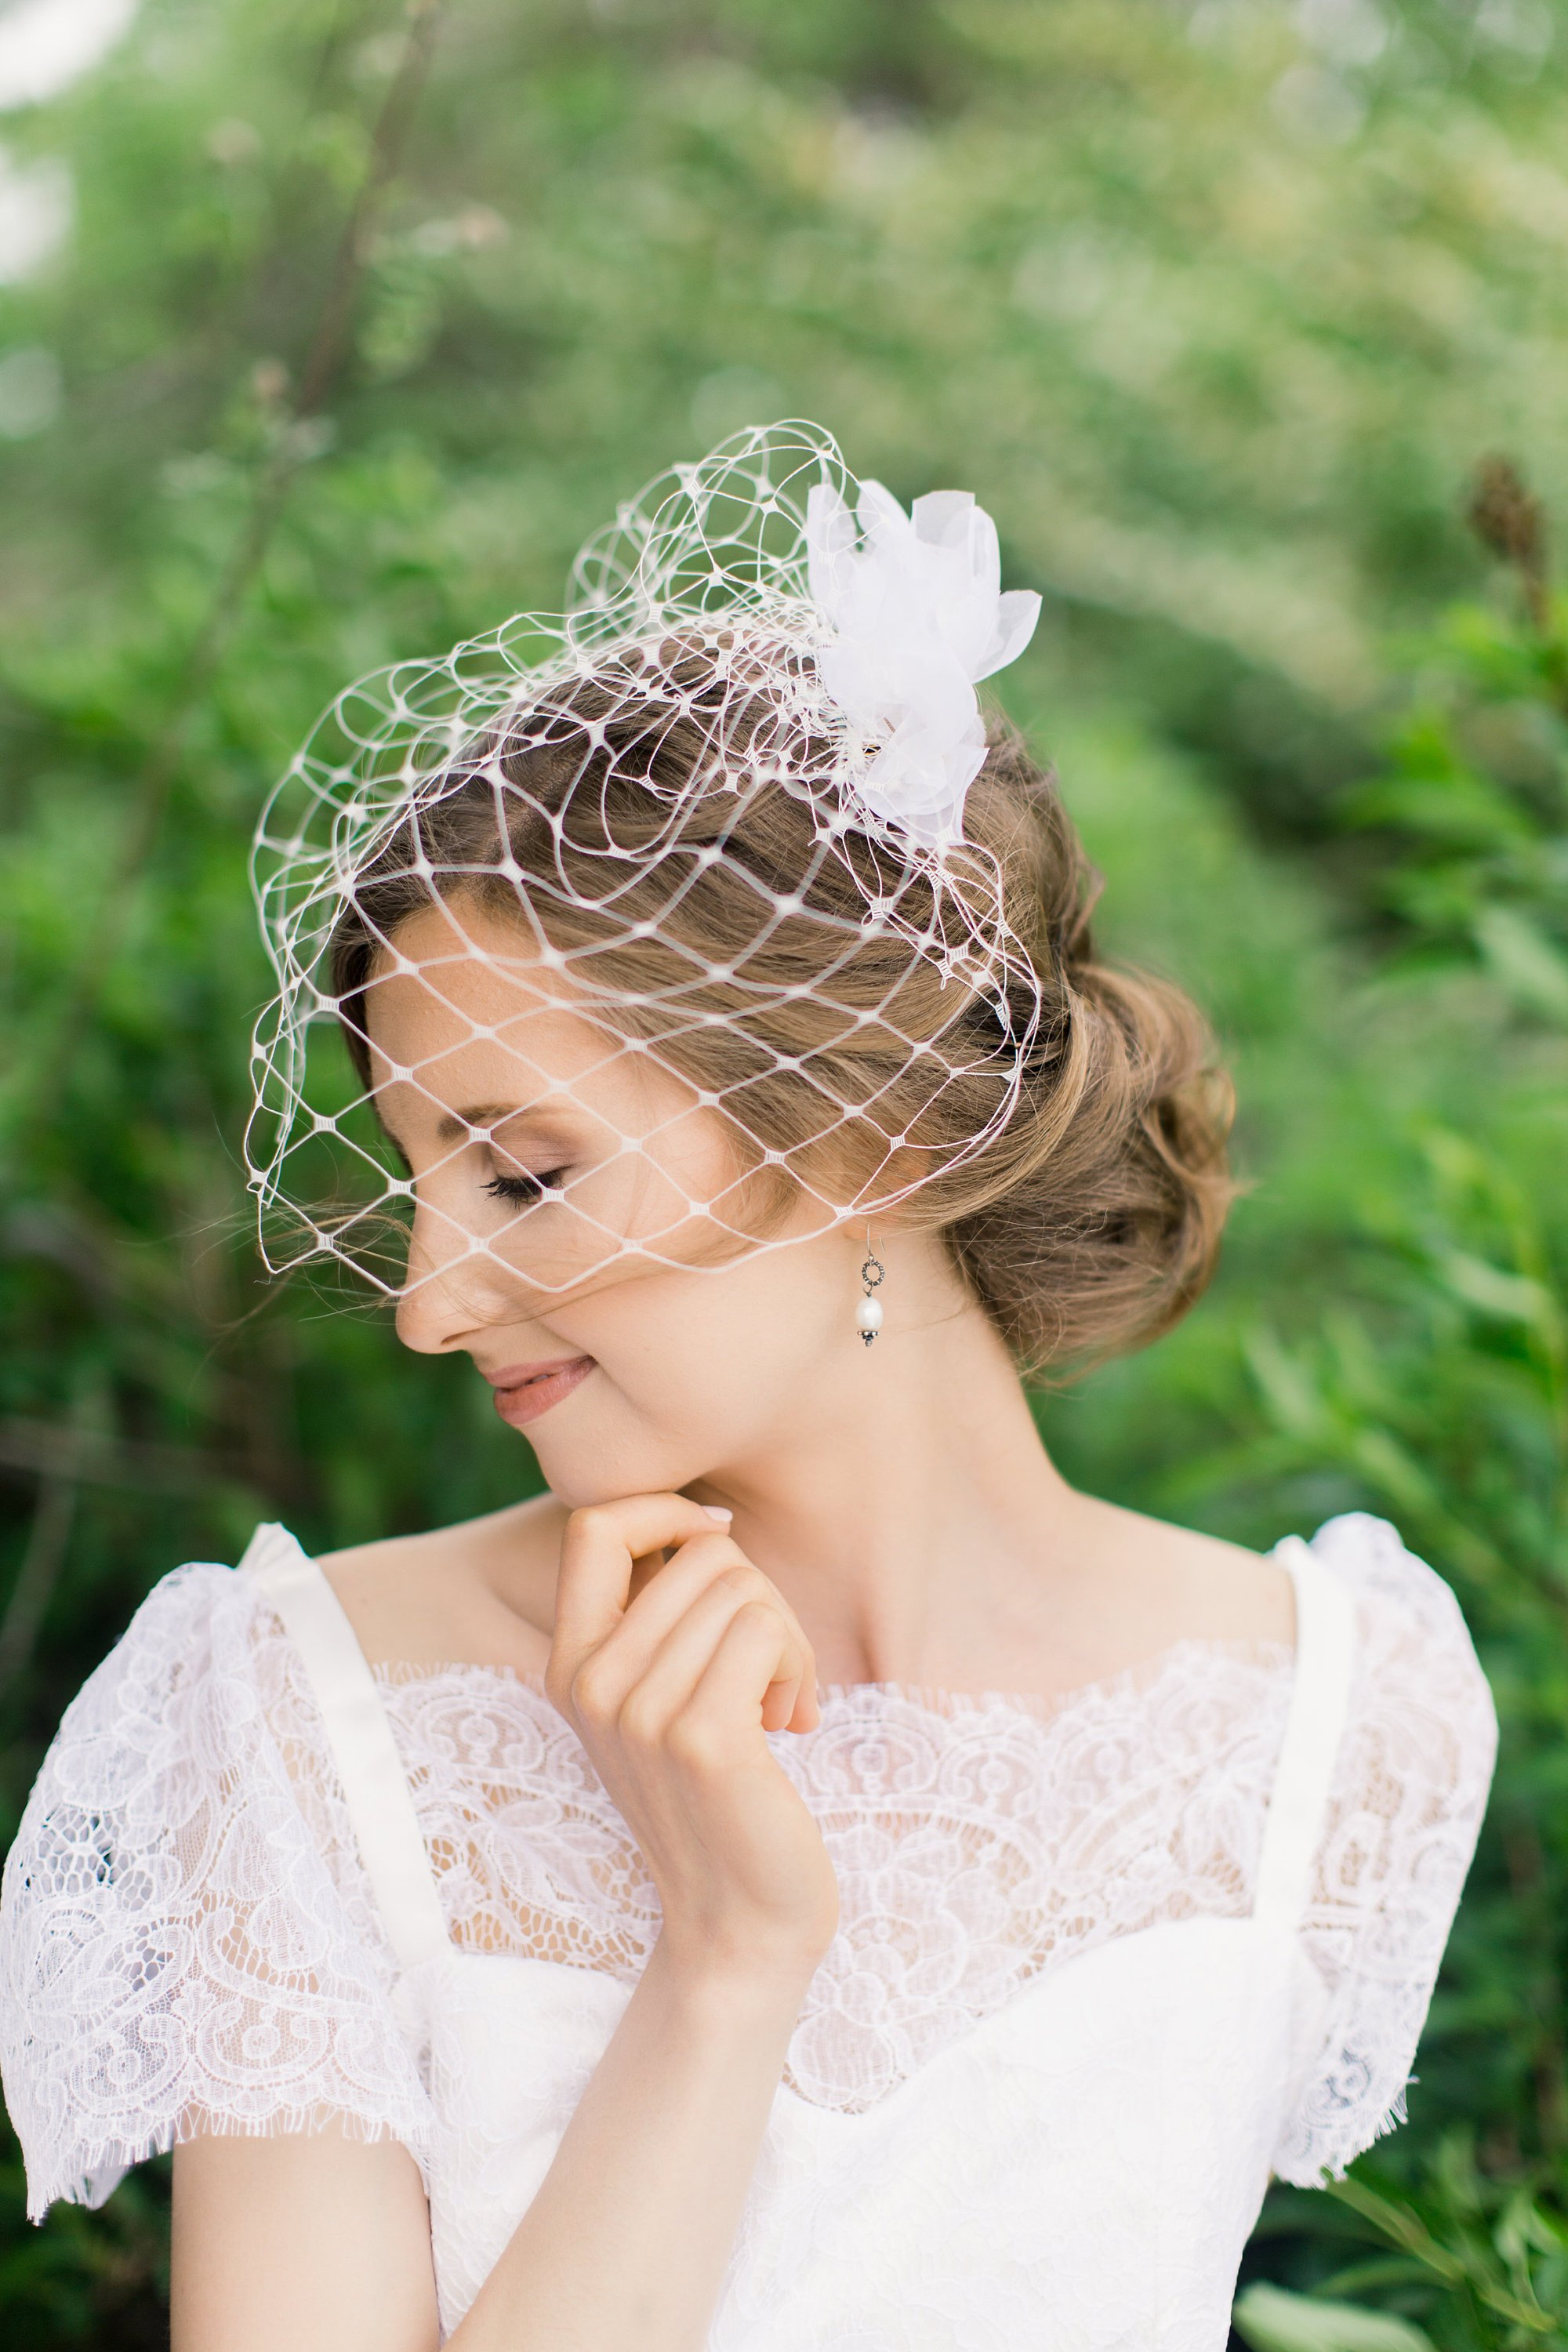 bridal birdcage veil, large scale diamond pattern, wedding bird cage veil.jpg